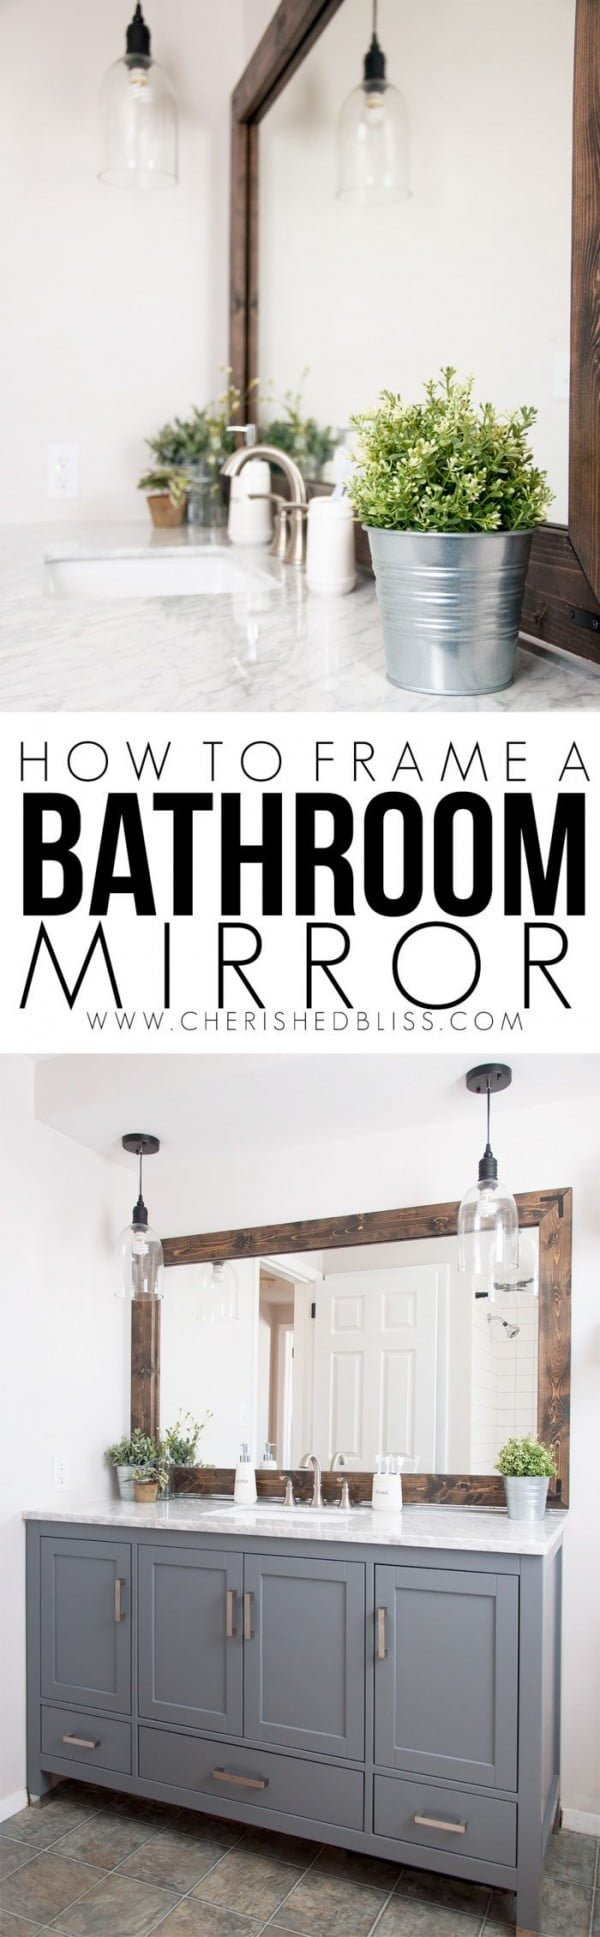 How to make a   bathroom mirror. Looks easy enough!